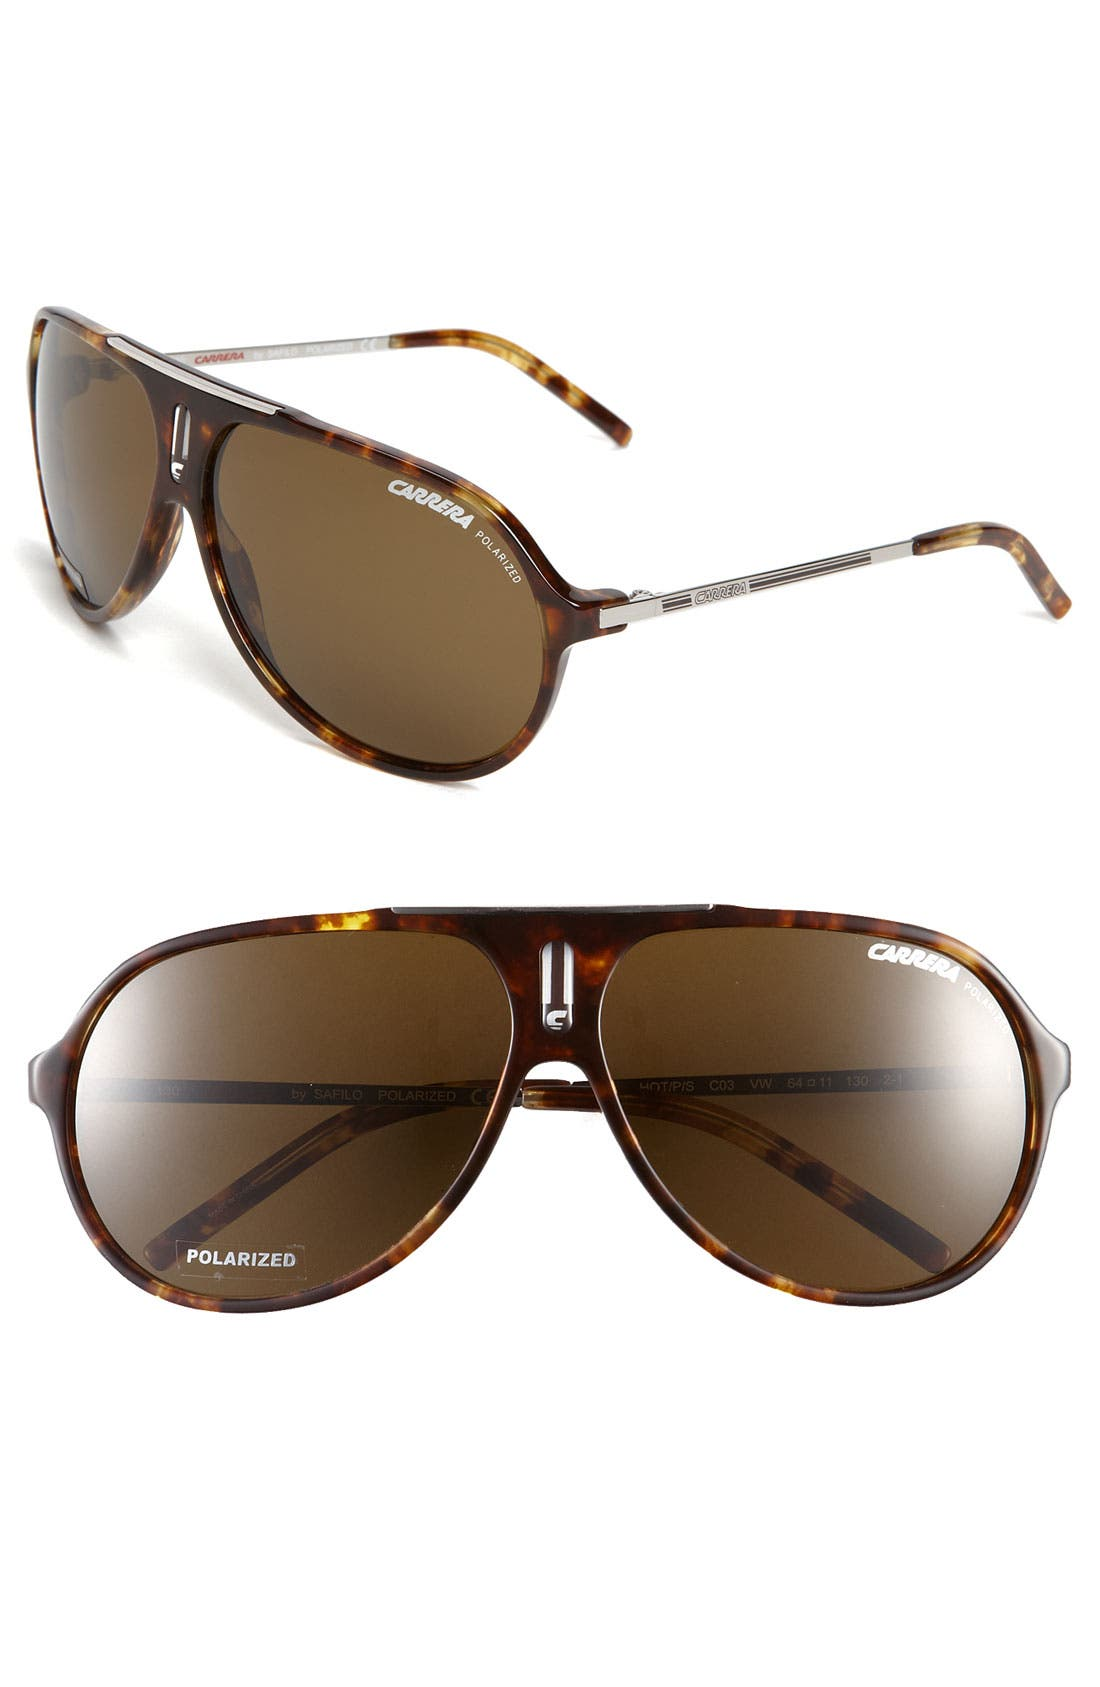 Alternate Image 1 Selected - Carrera Eyewear 'Hot' 64mm Polarized Aviator Sunglasses